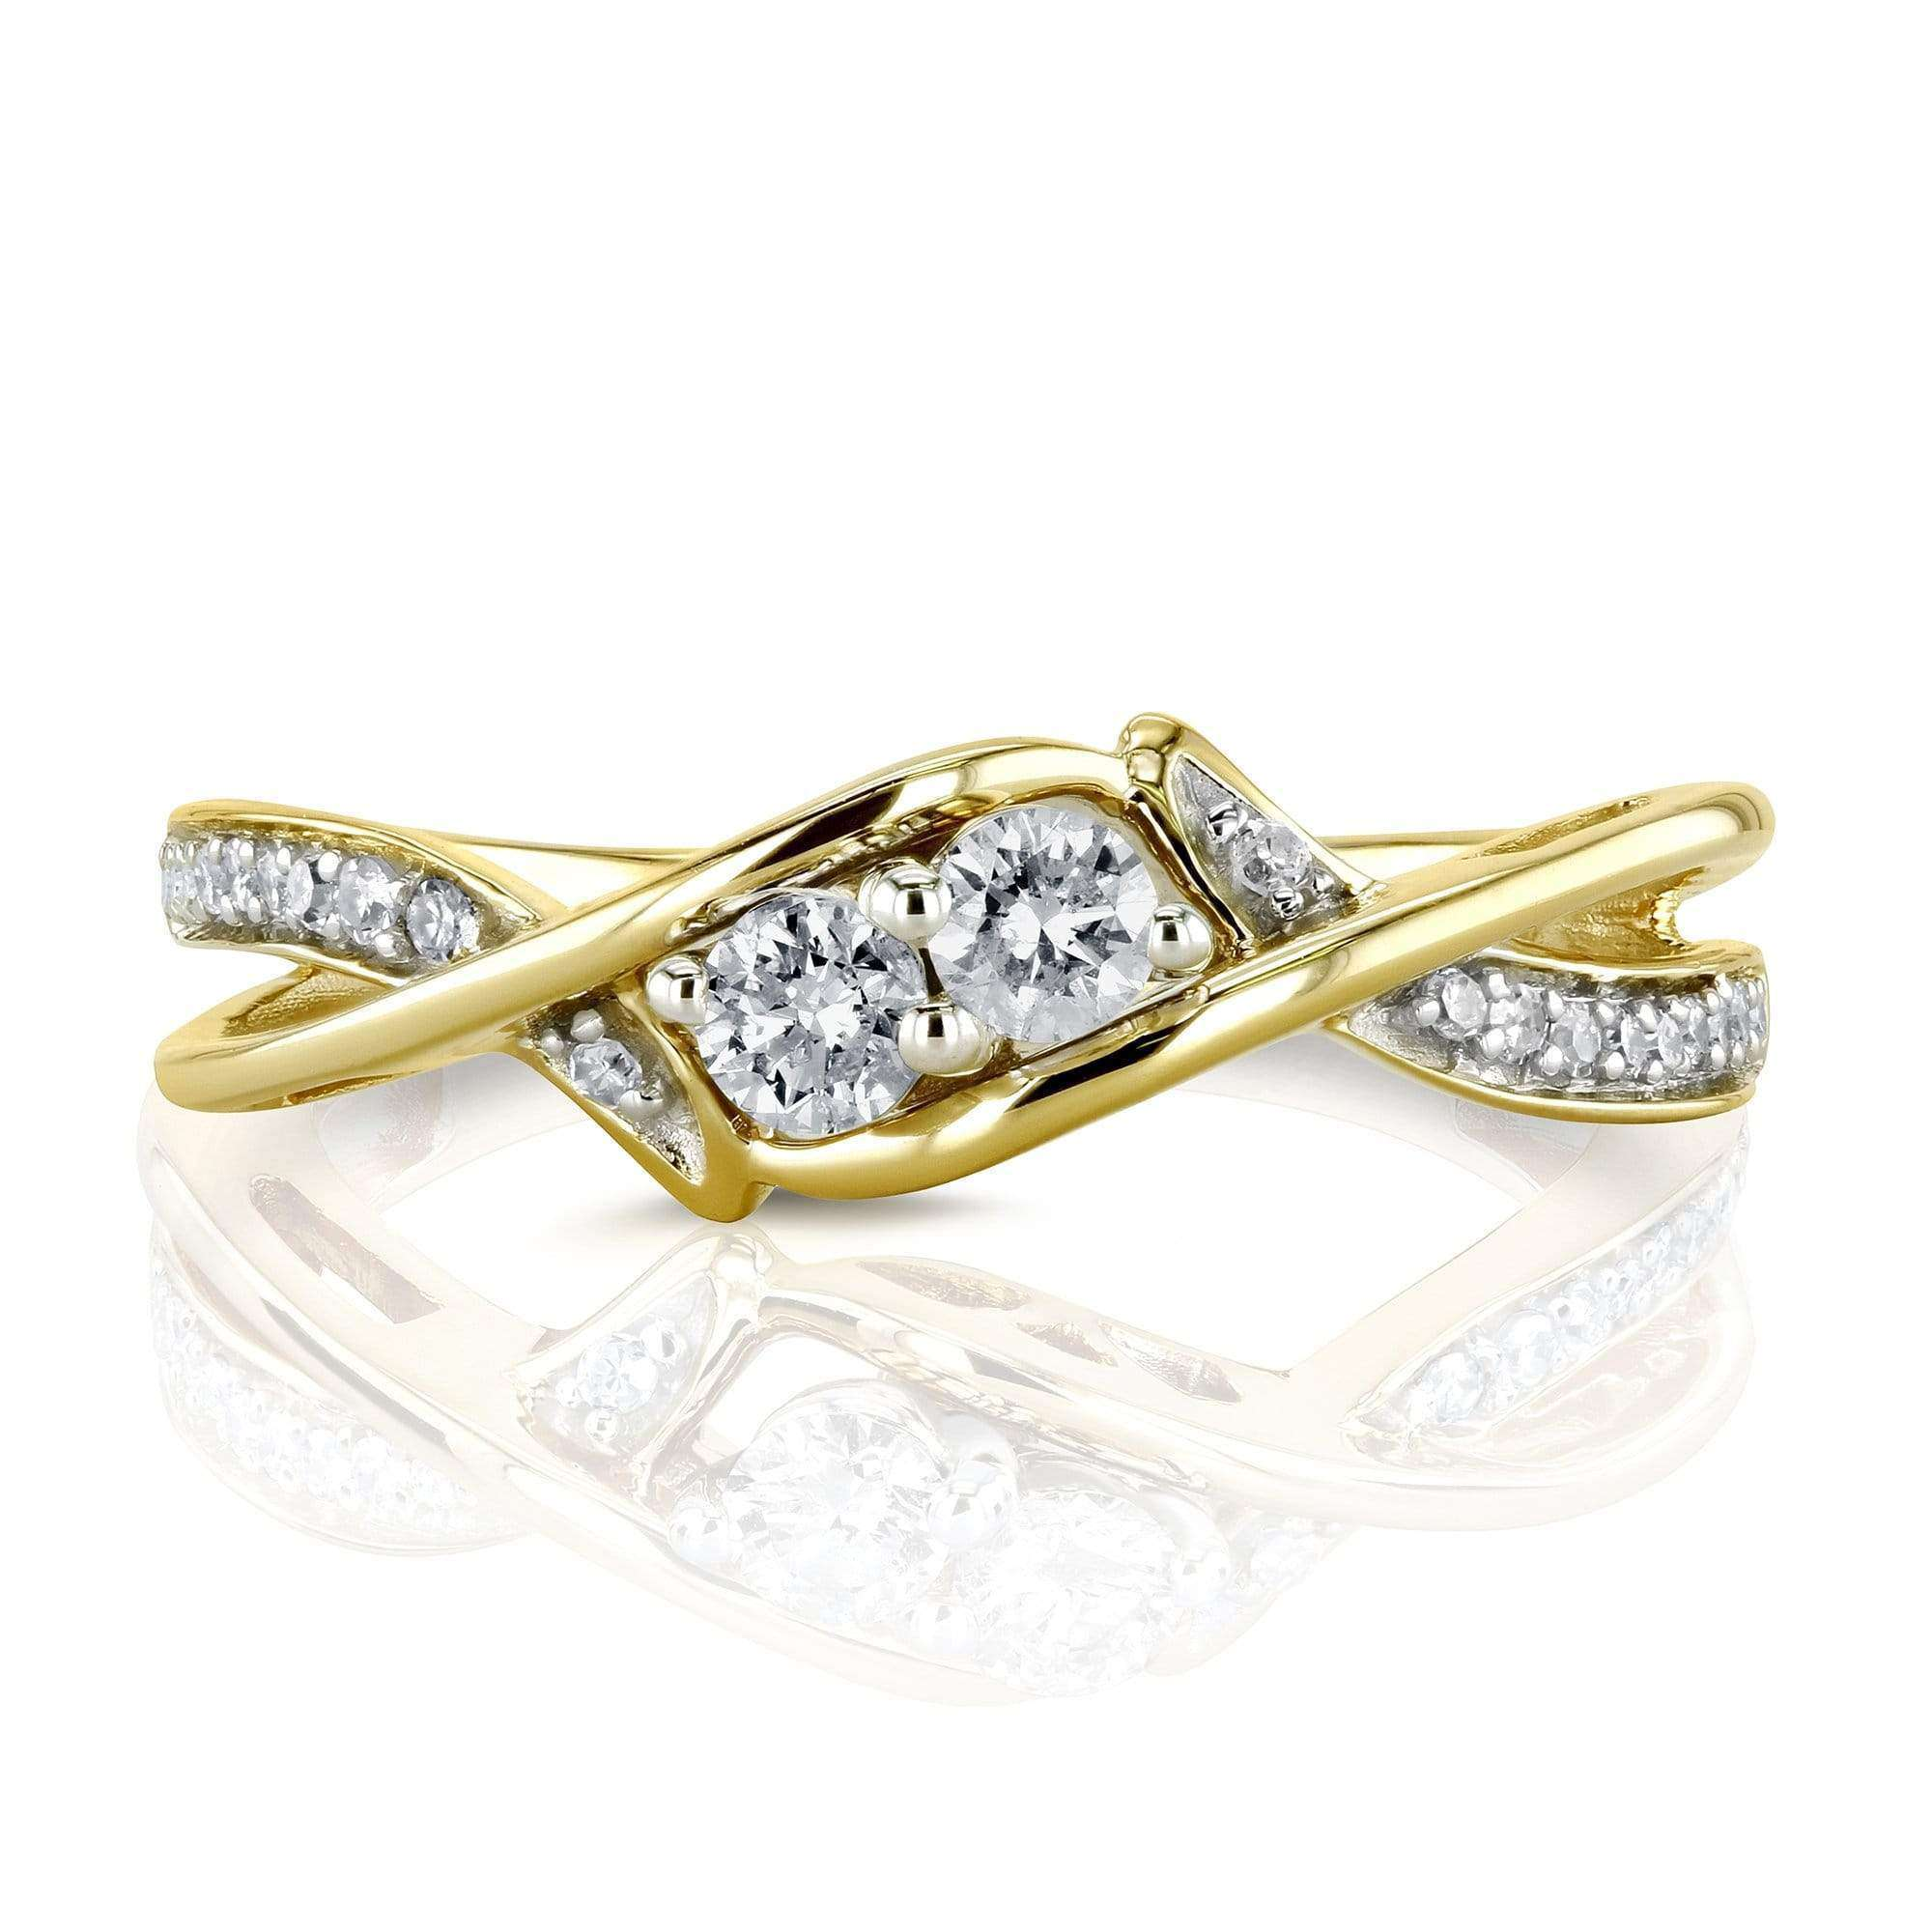 Compare Two Collection - 2 Stone Crossover Style 1/4 Carat TW Diamond Ring in 10k Yellow Gold - 6